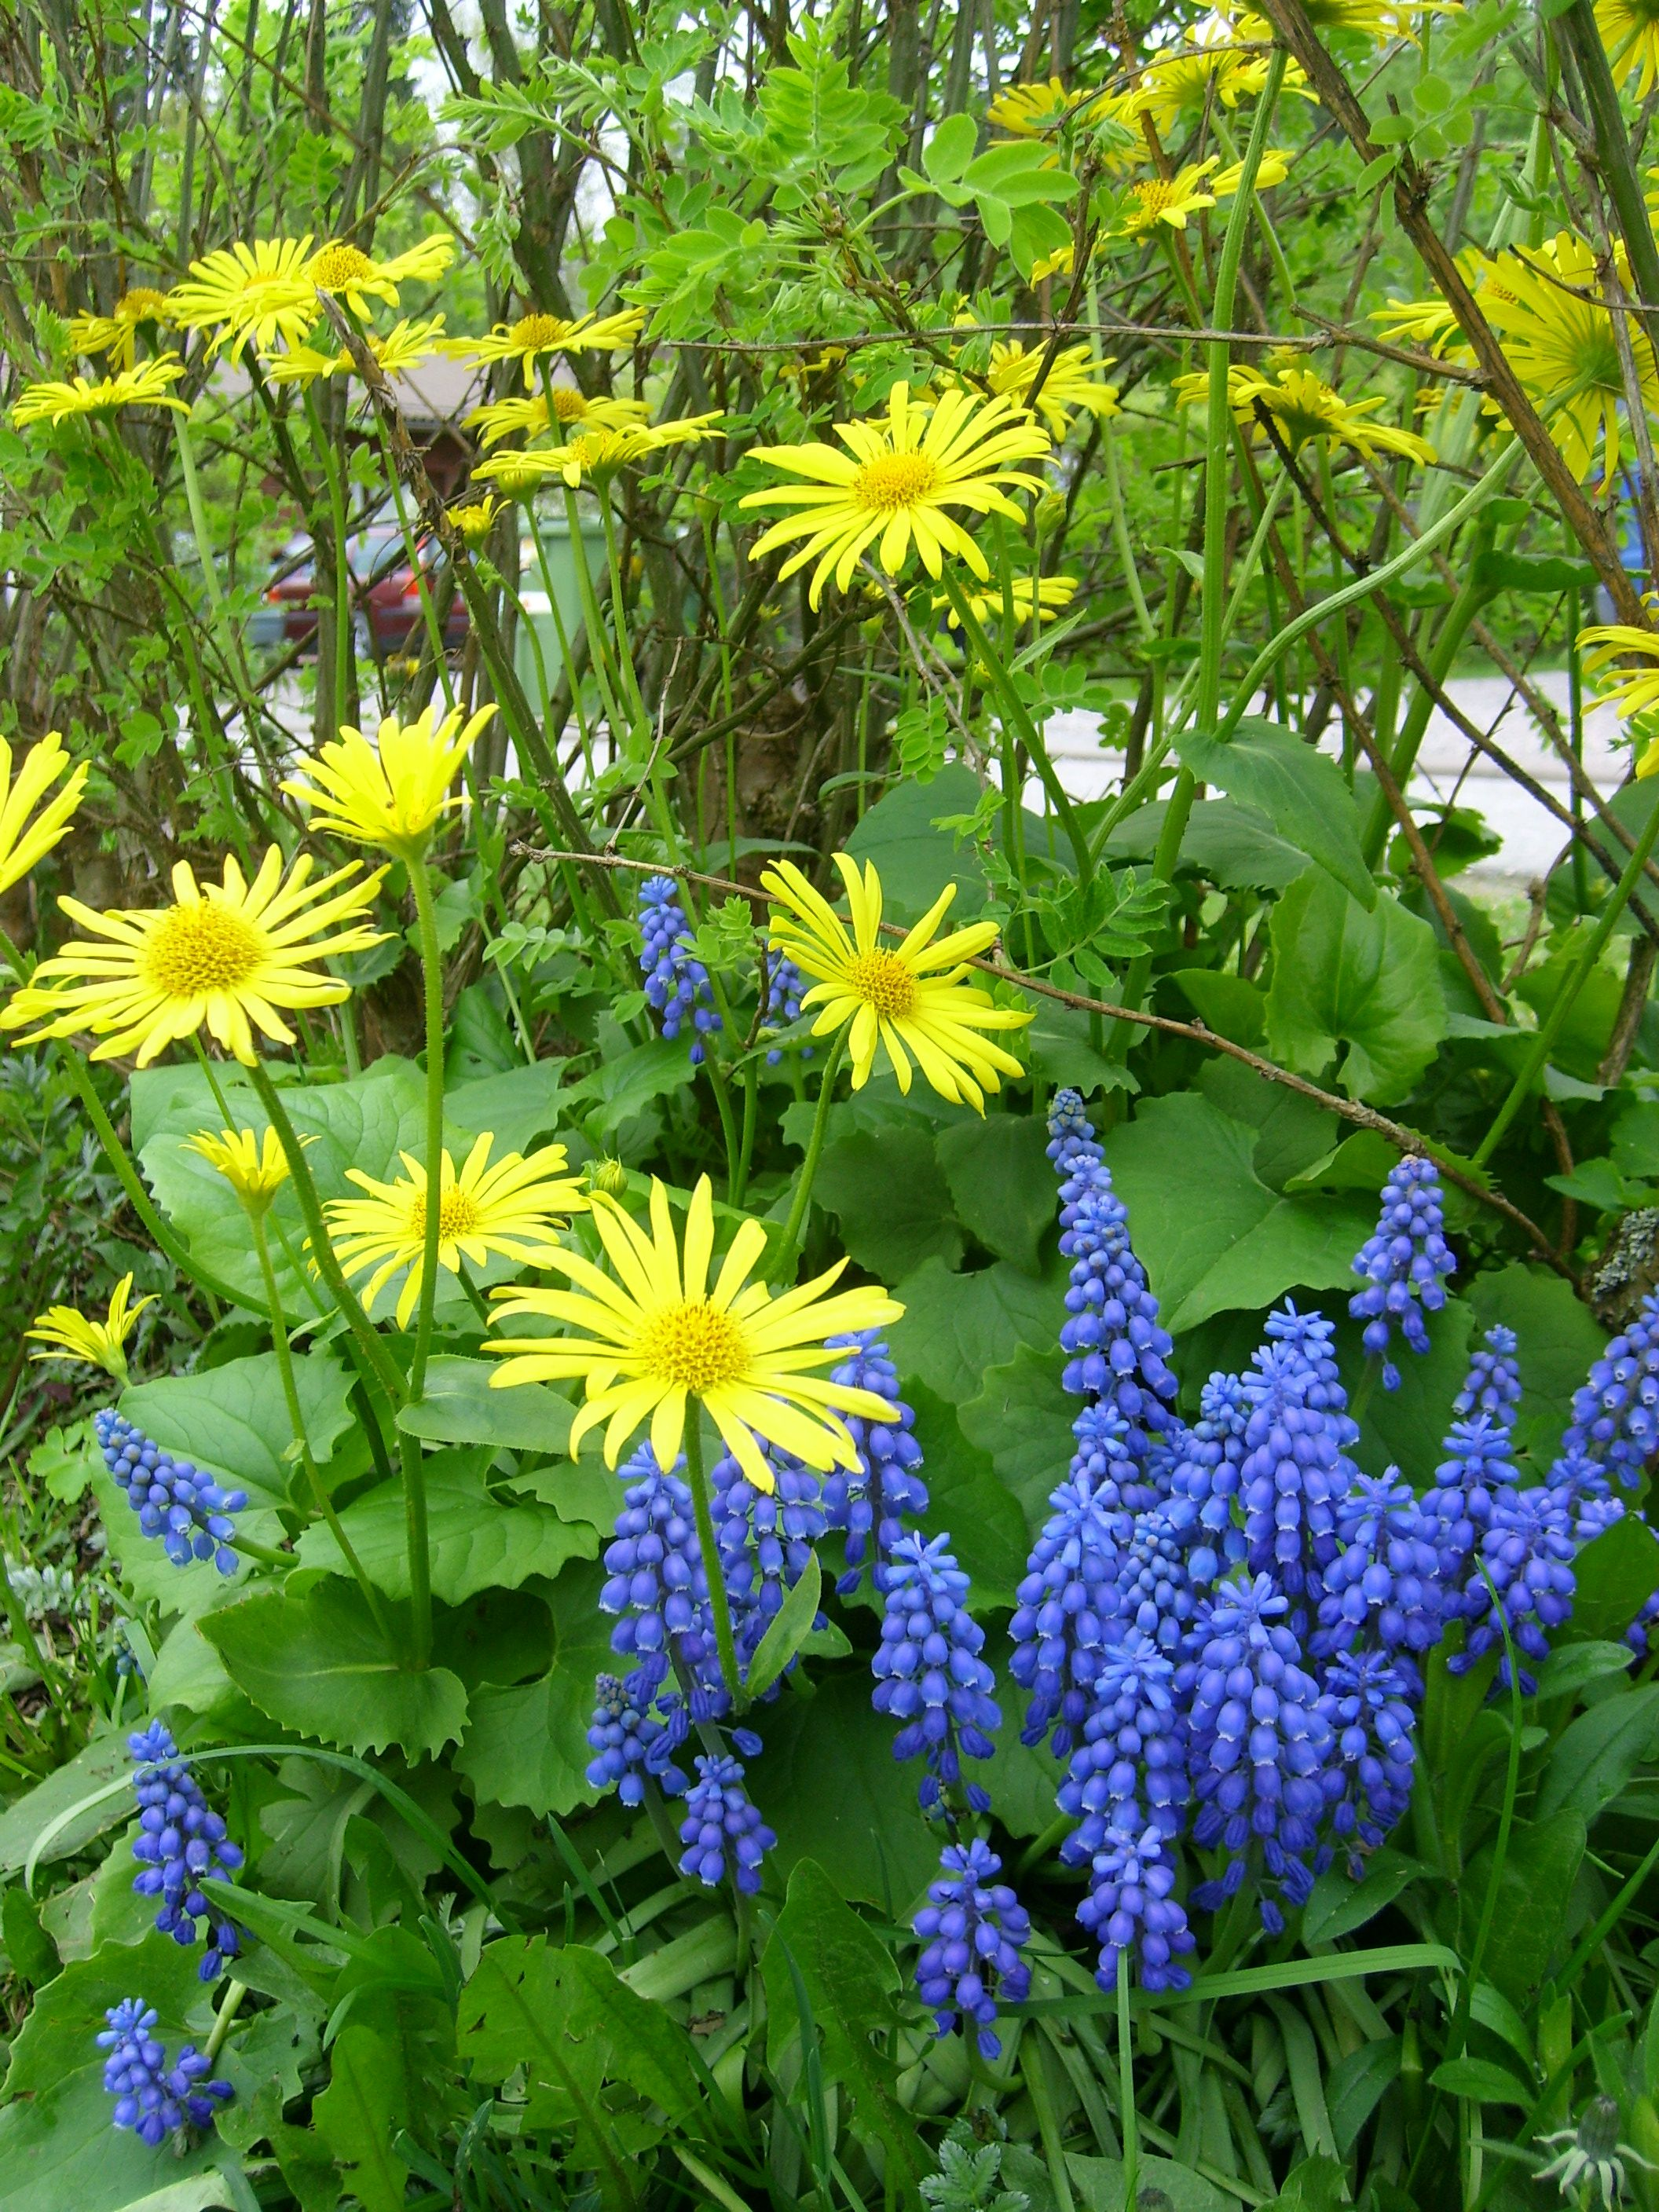 Doronicum Orientale Together With Muscari They Look Nice Together